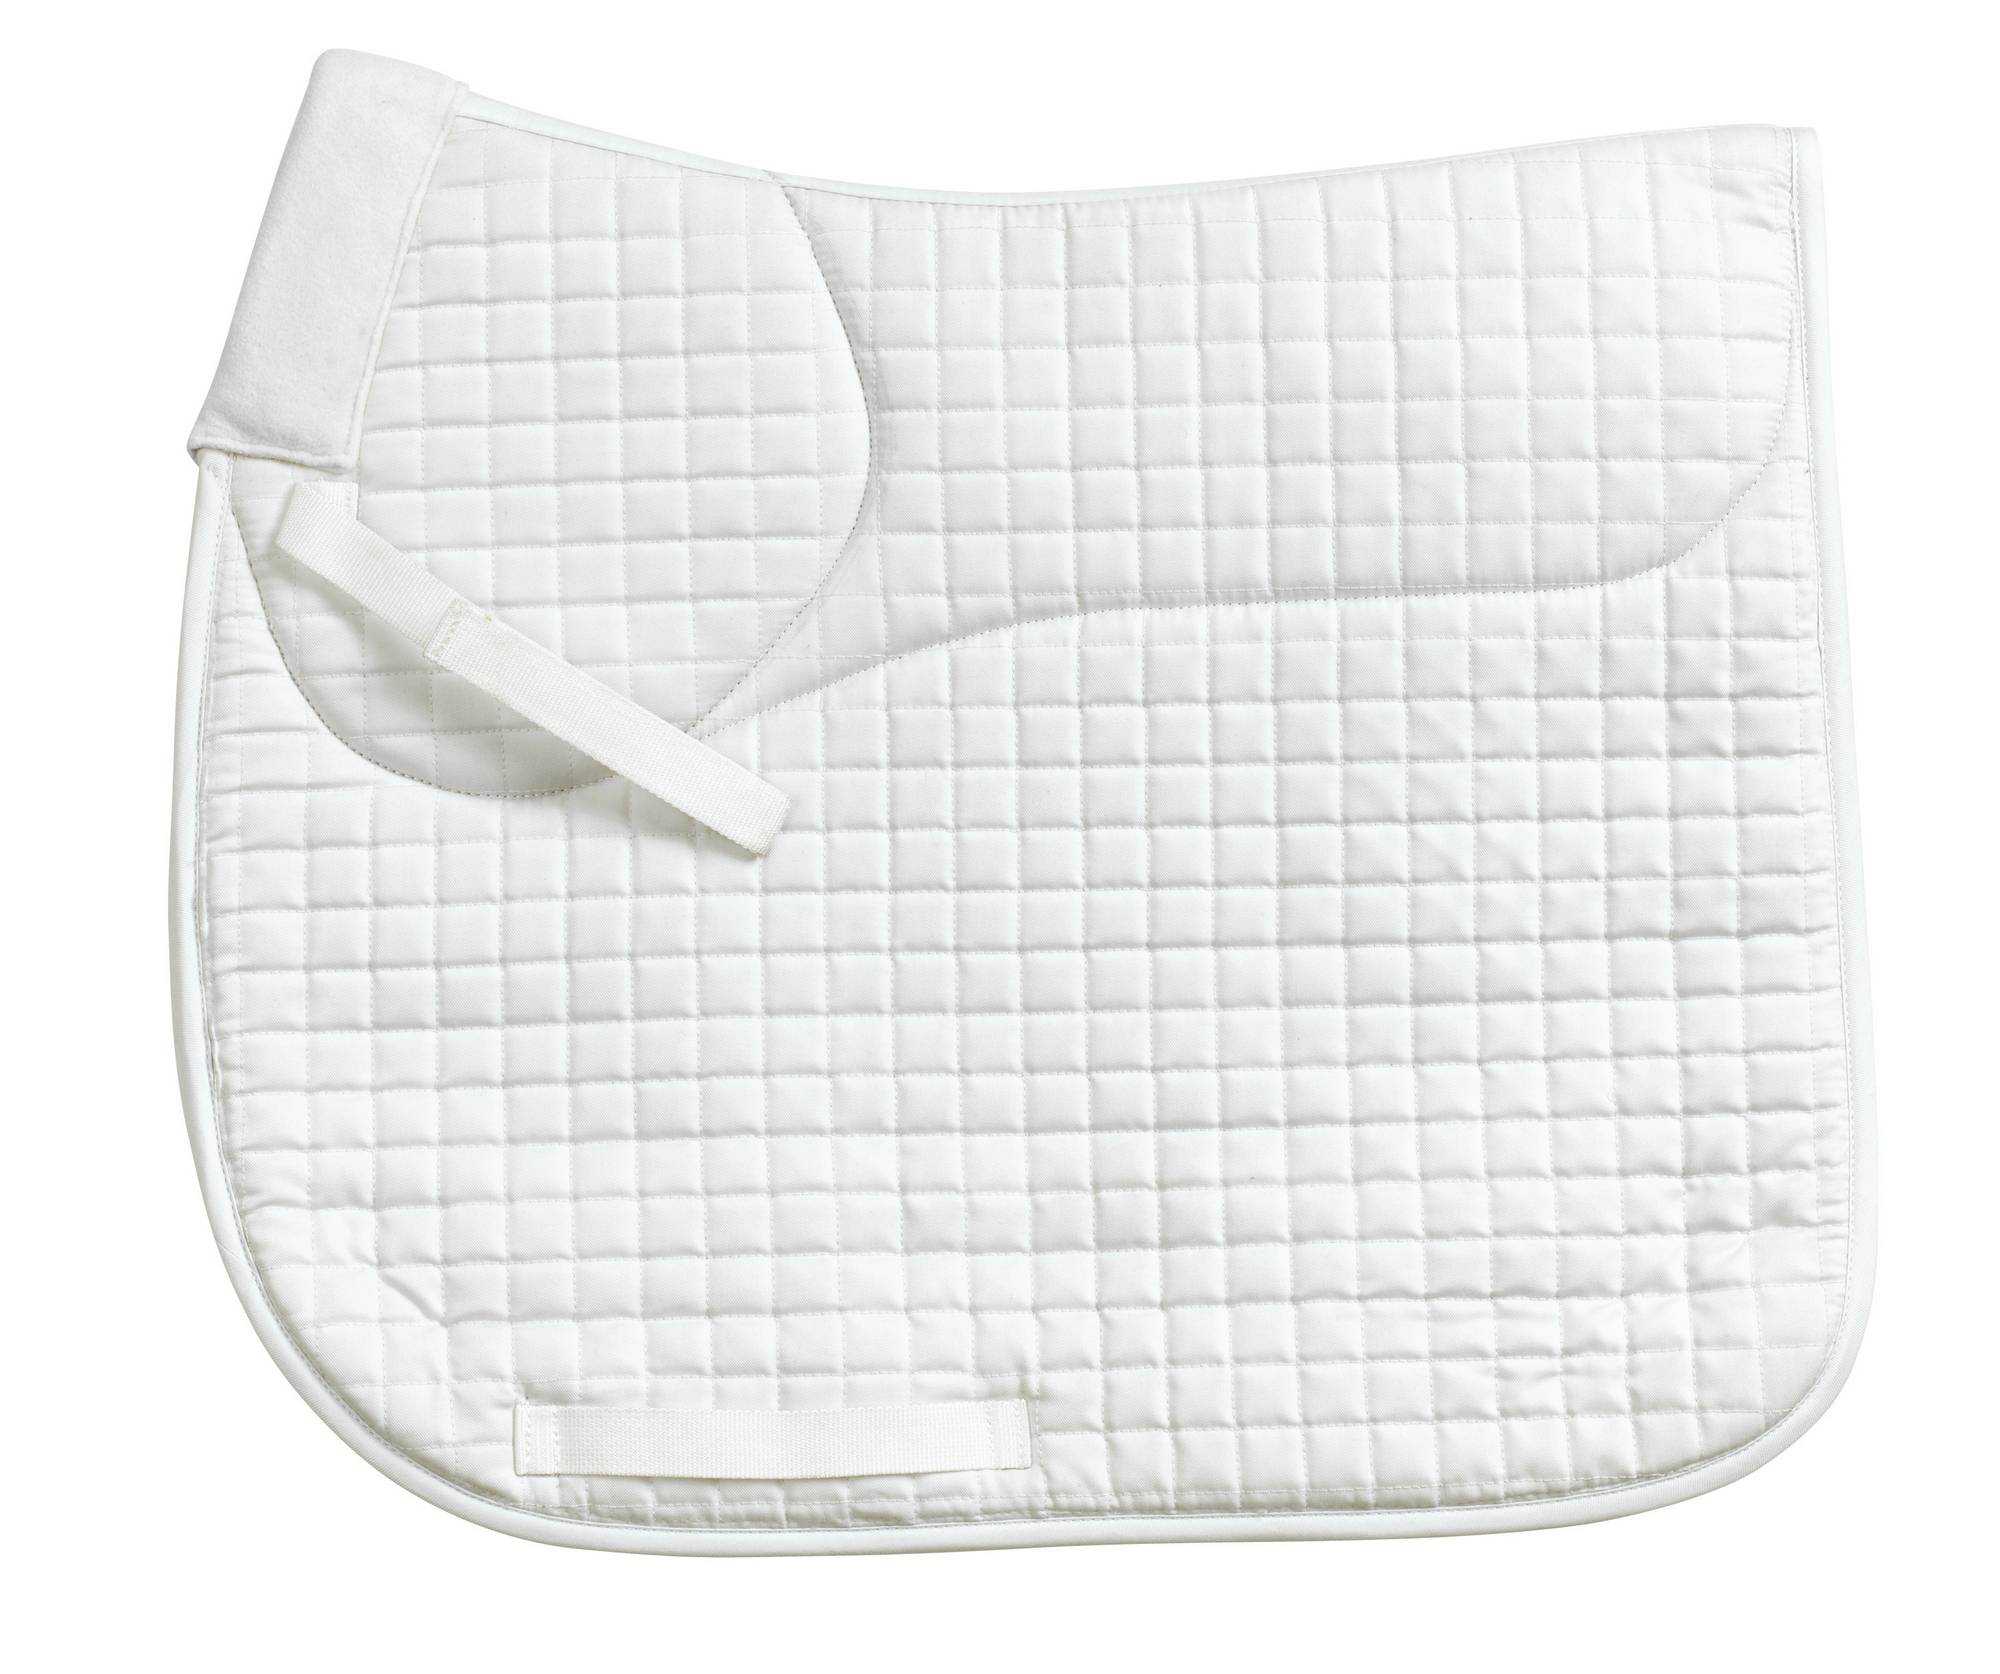 Centaur Quilted Top Synth Fleece Bottom Pad -Dressage